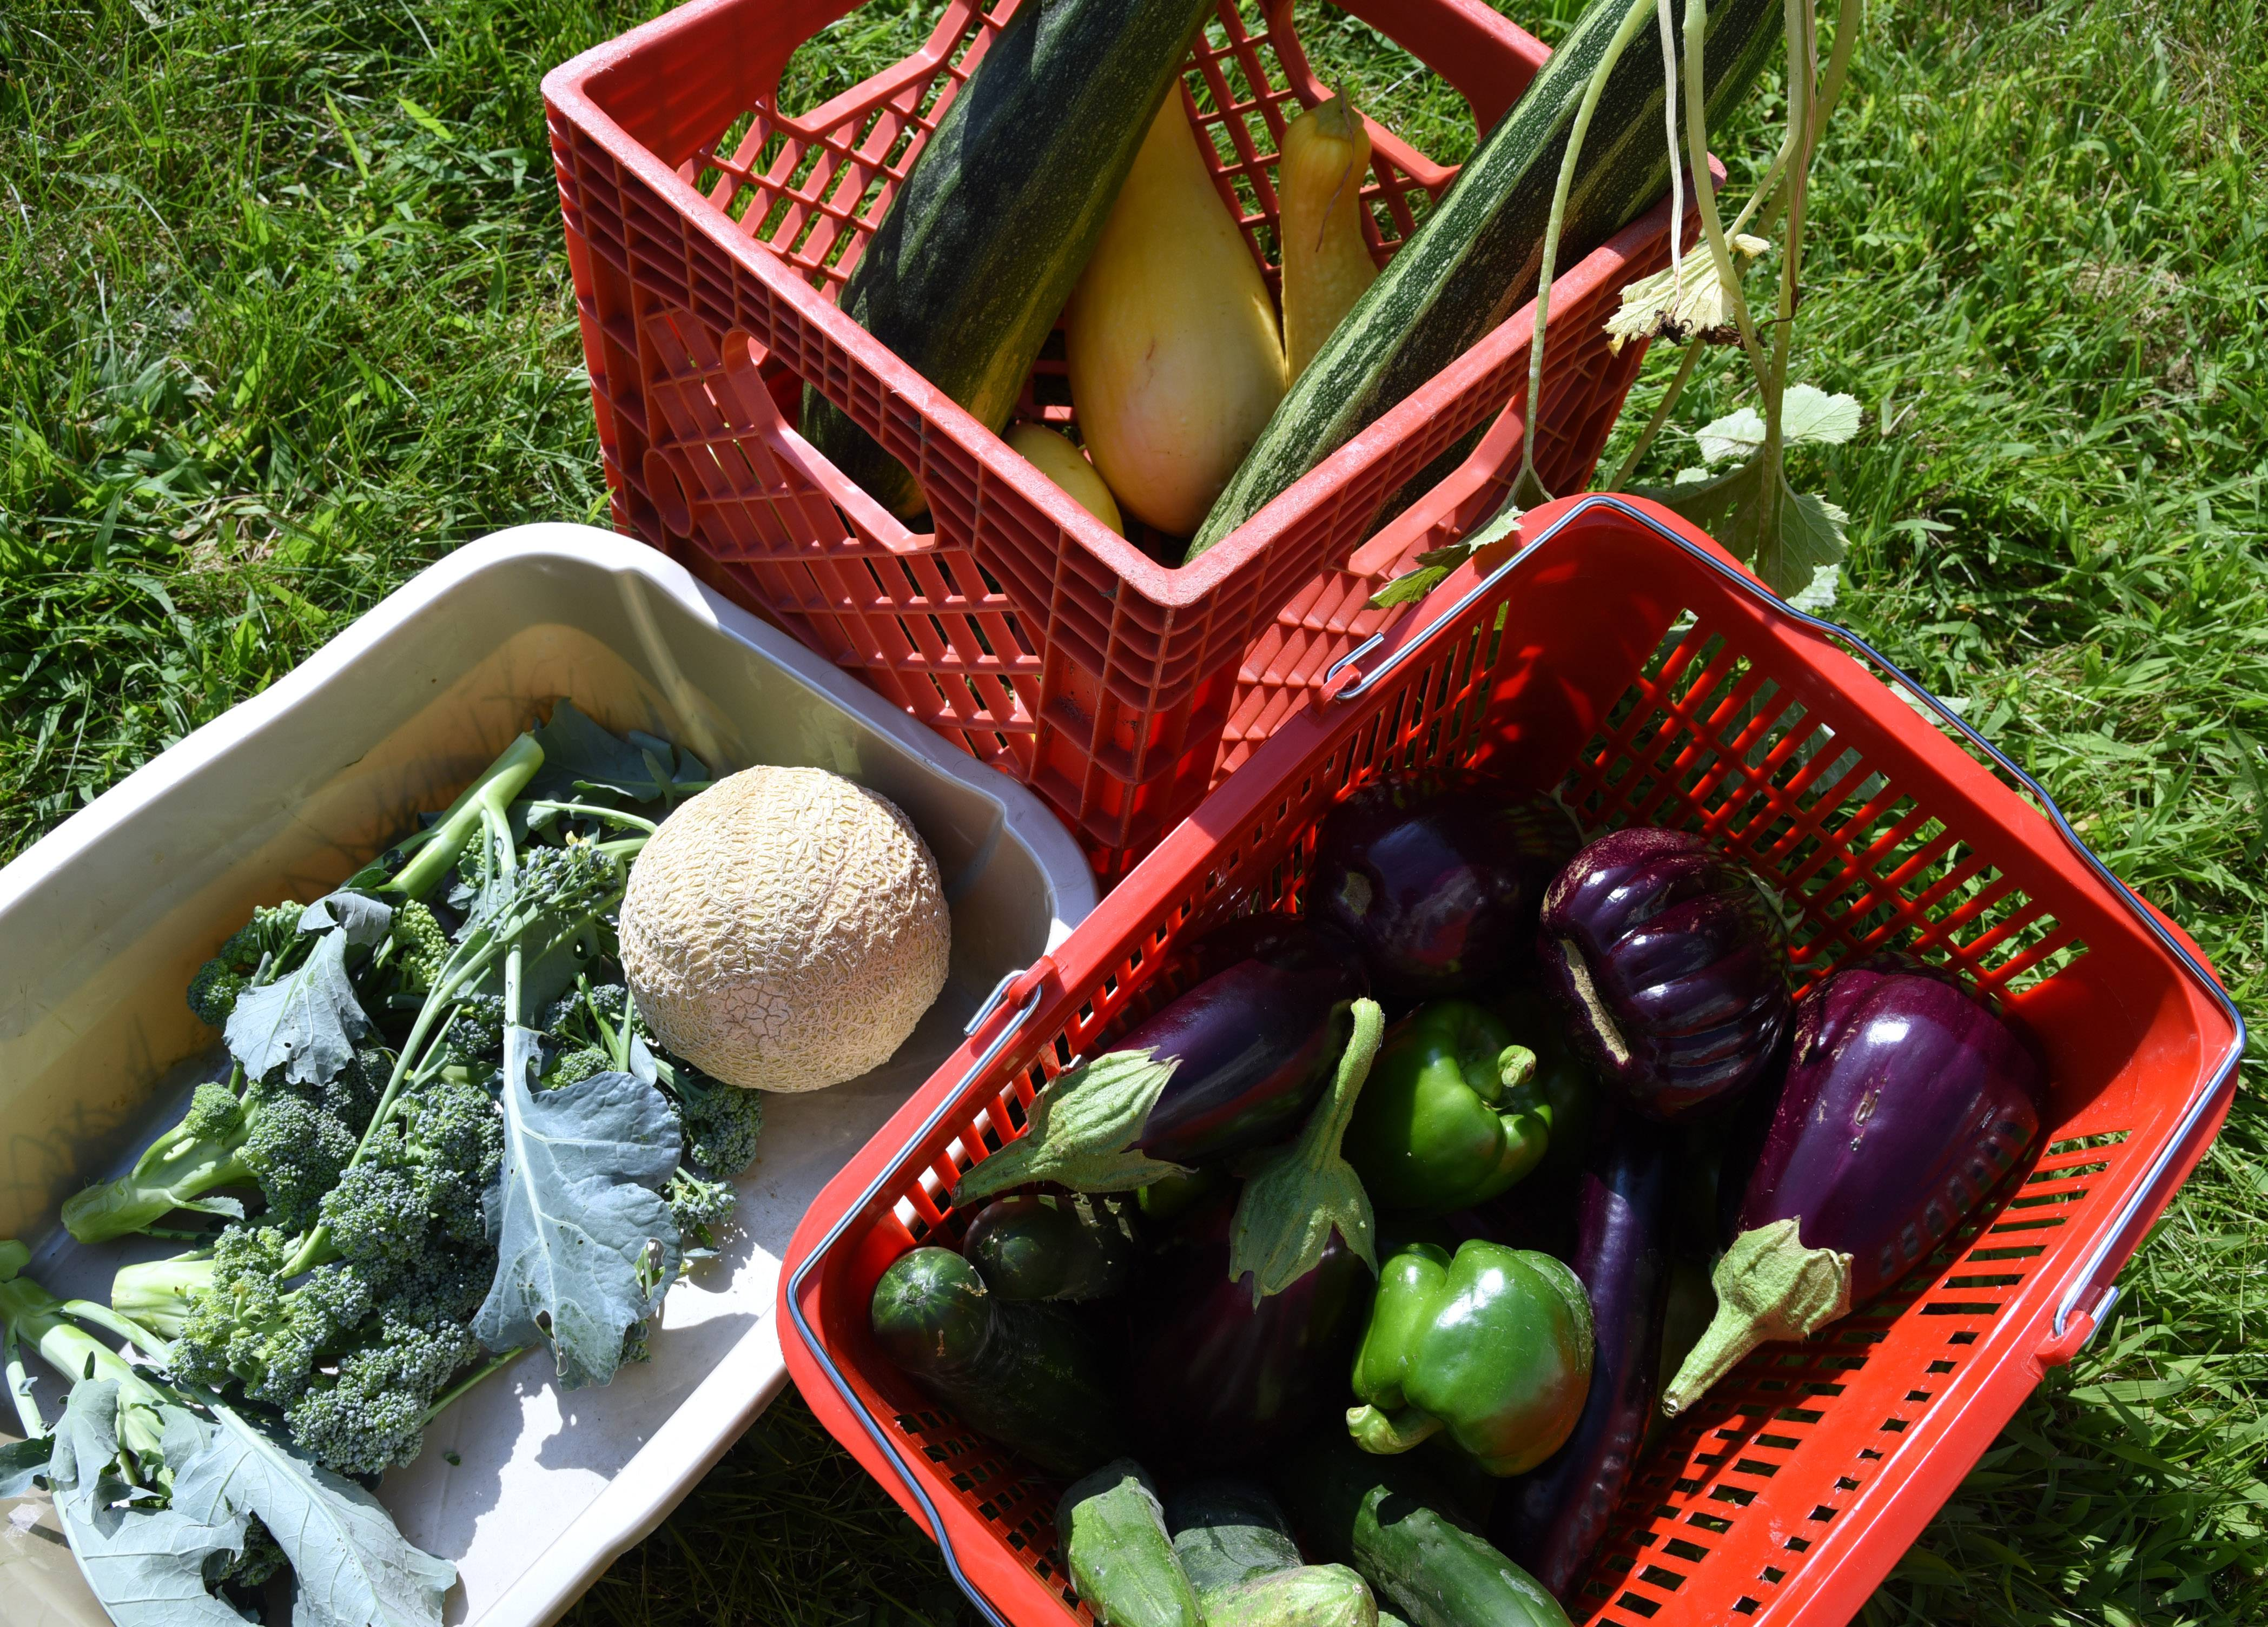 Here are some of the vegetables picked Tuesday from the Fremont Elementary School gardens in Mundelein. The items will be donated to the Fremont Township Food Pantry.